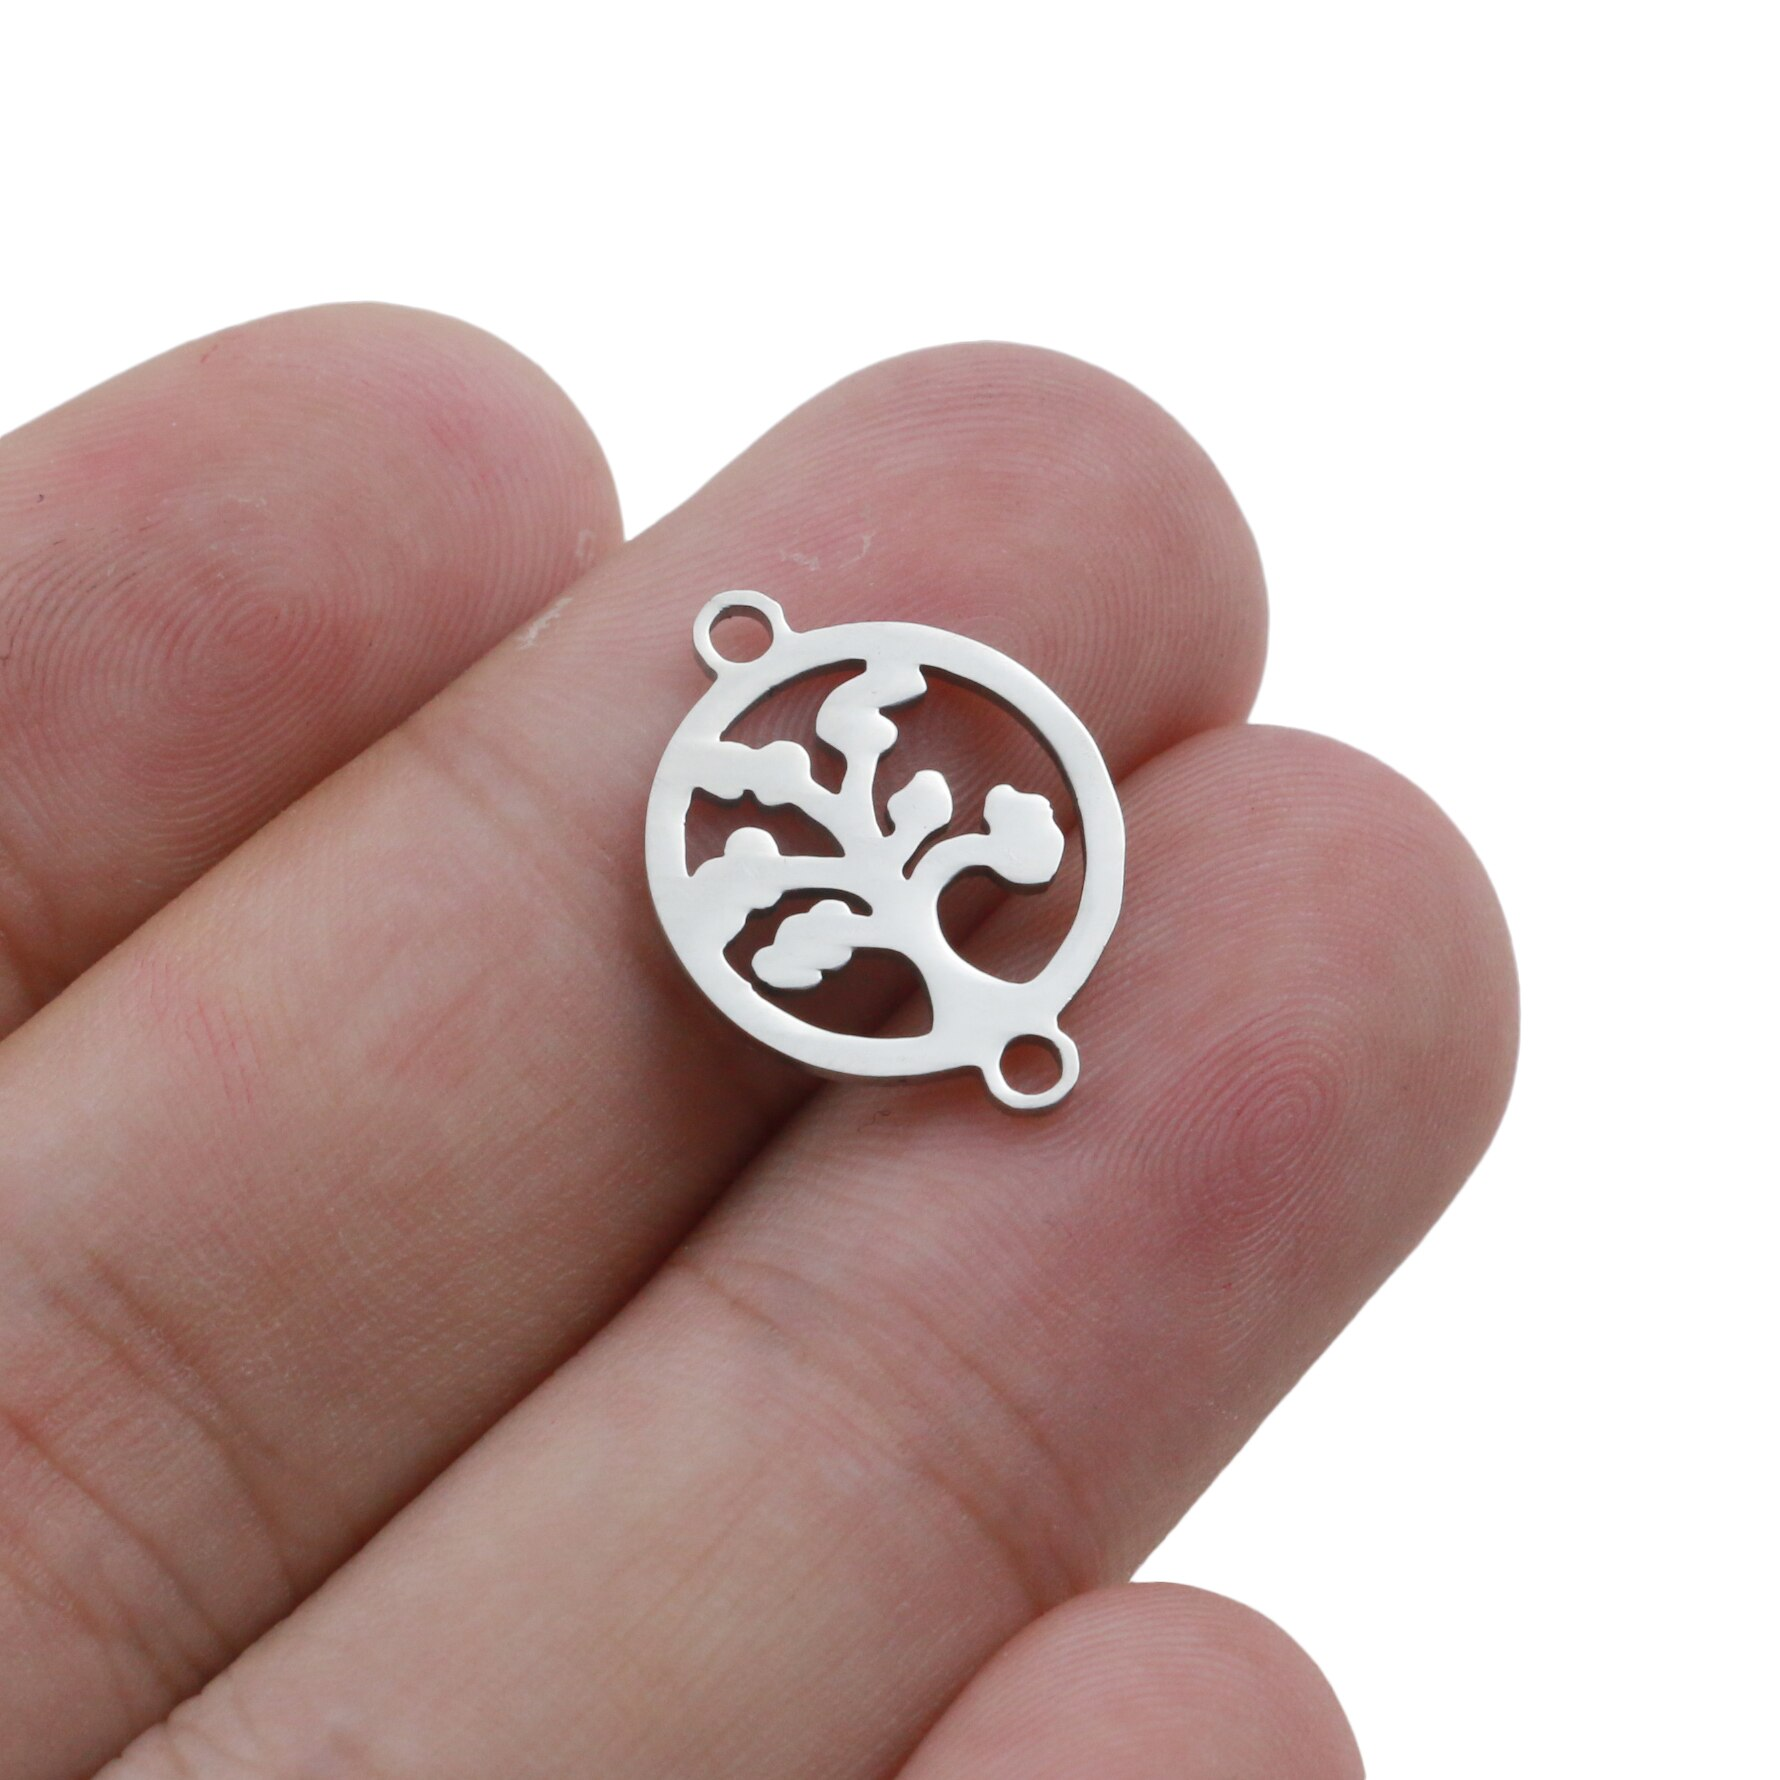 Metal Round Shaped Charms